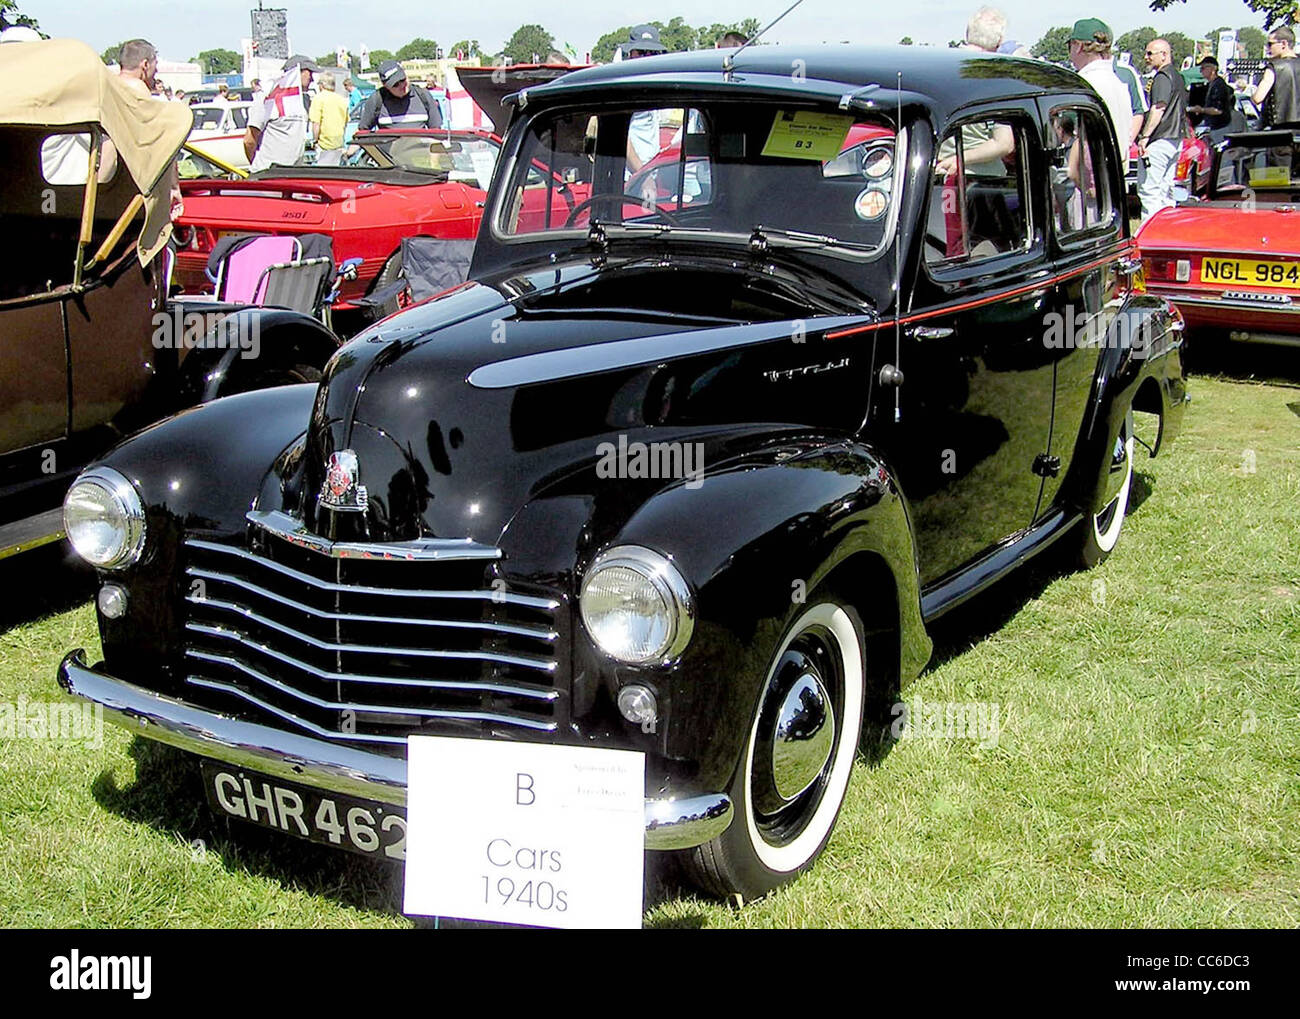 1949 Vauxhall Wyvern (L series) at Bristol Car Show, The Downs, Bristol, England. - Stock Image